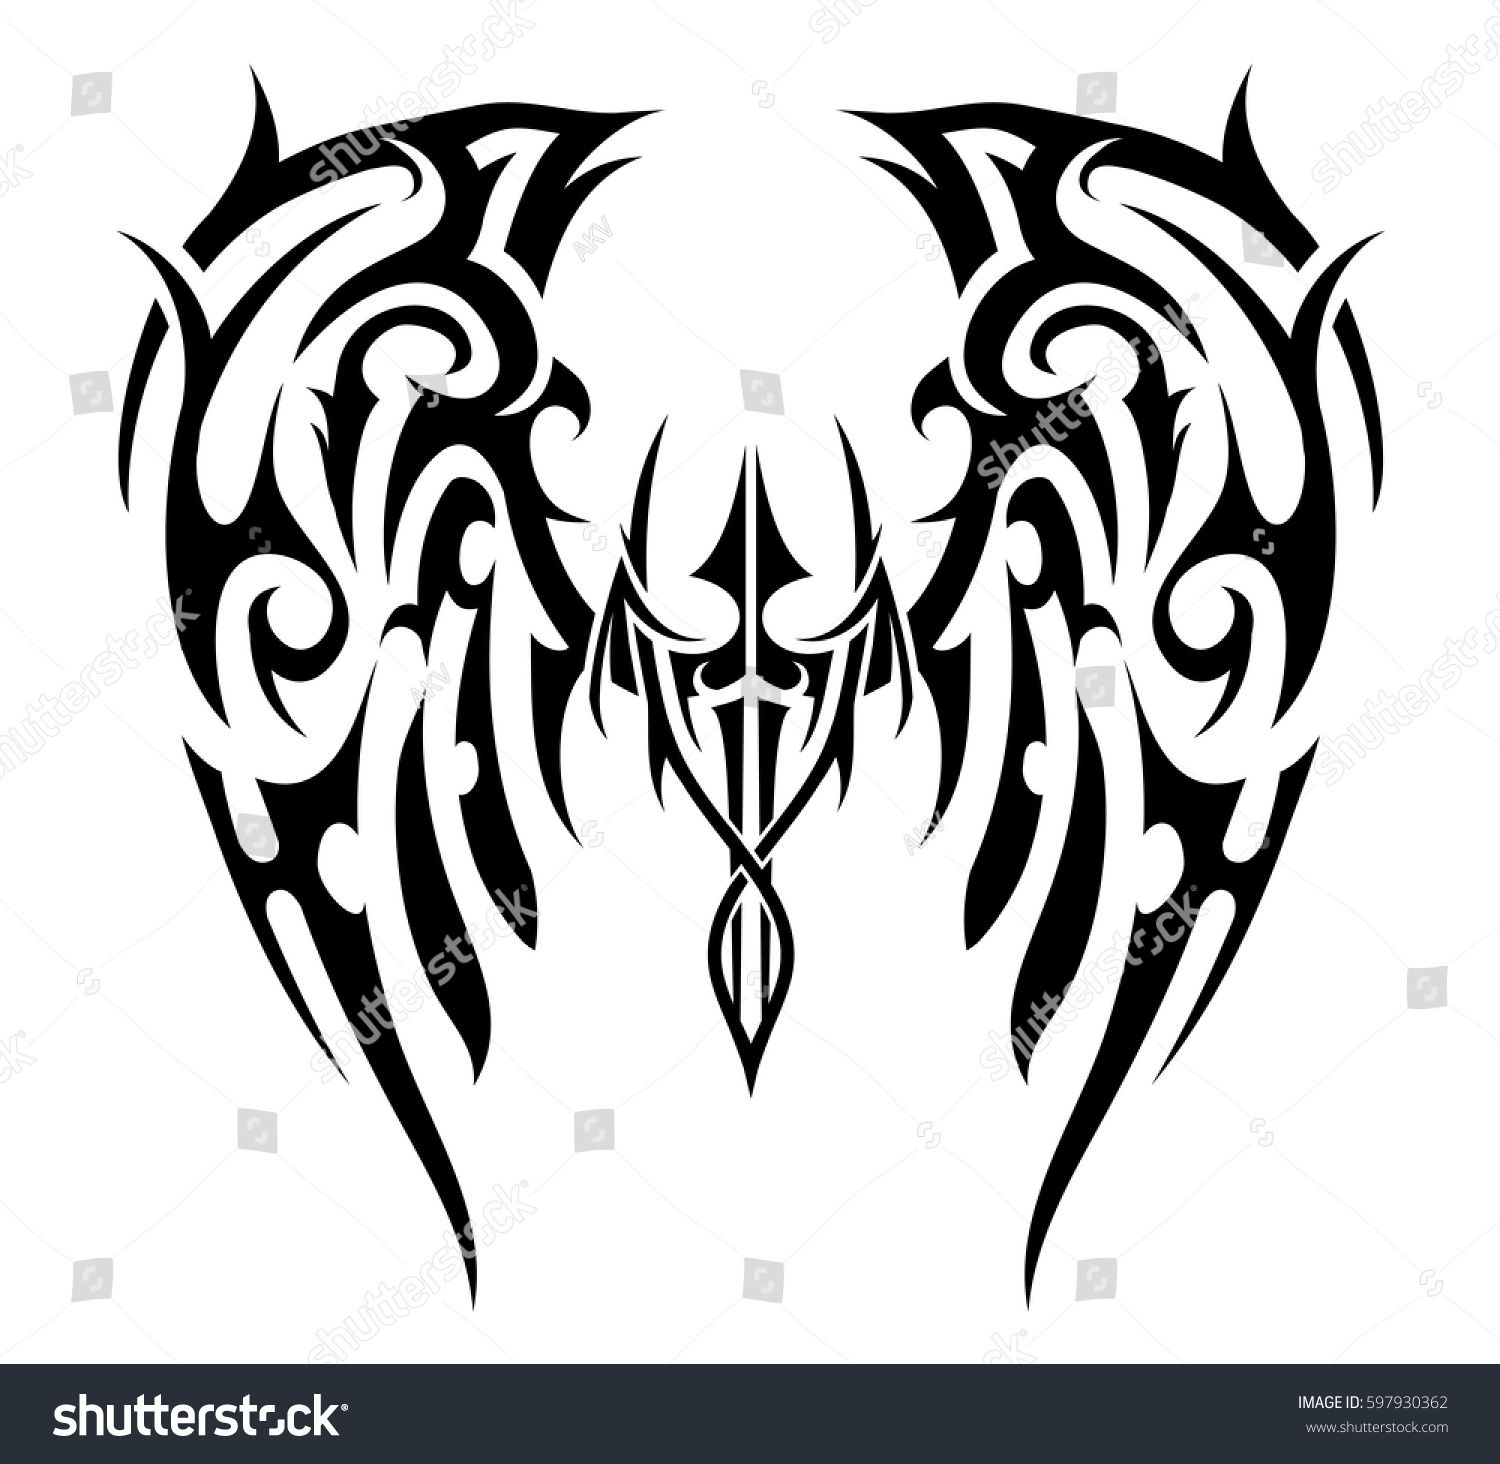 39b6c7c39 tribal angel wings drawings - - Yahoo Image Search Results ...